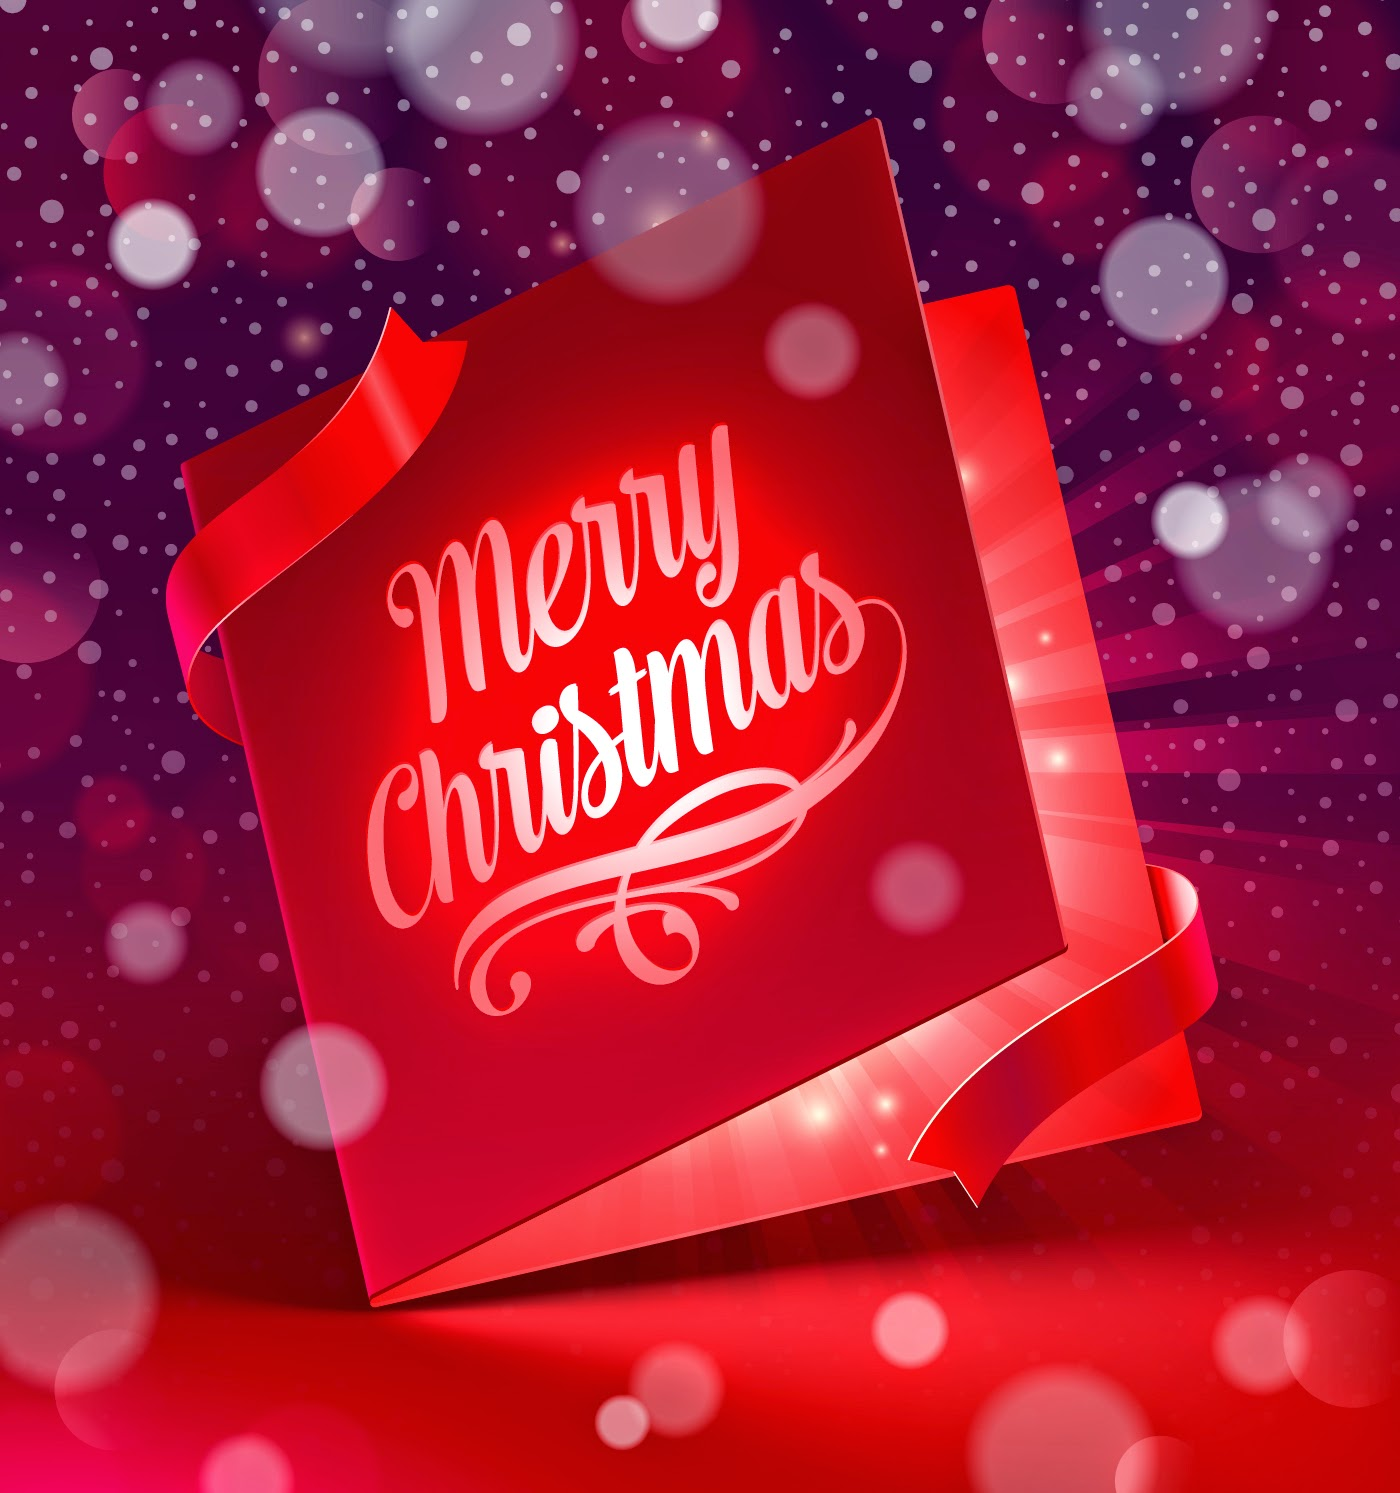 Merry-Christmad-Xmas-card-red-image.jpg